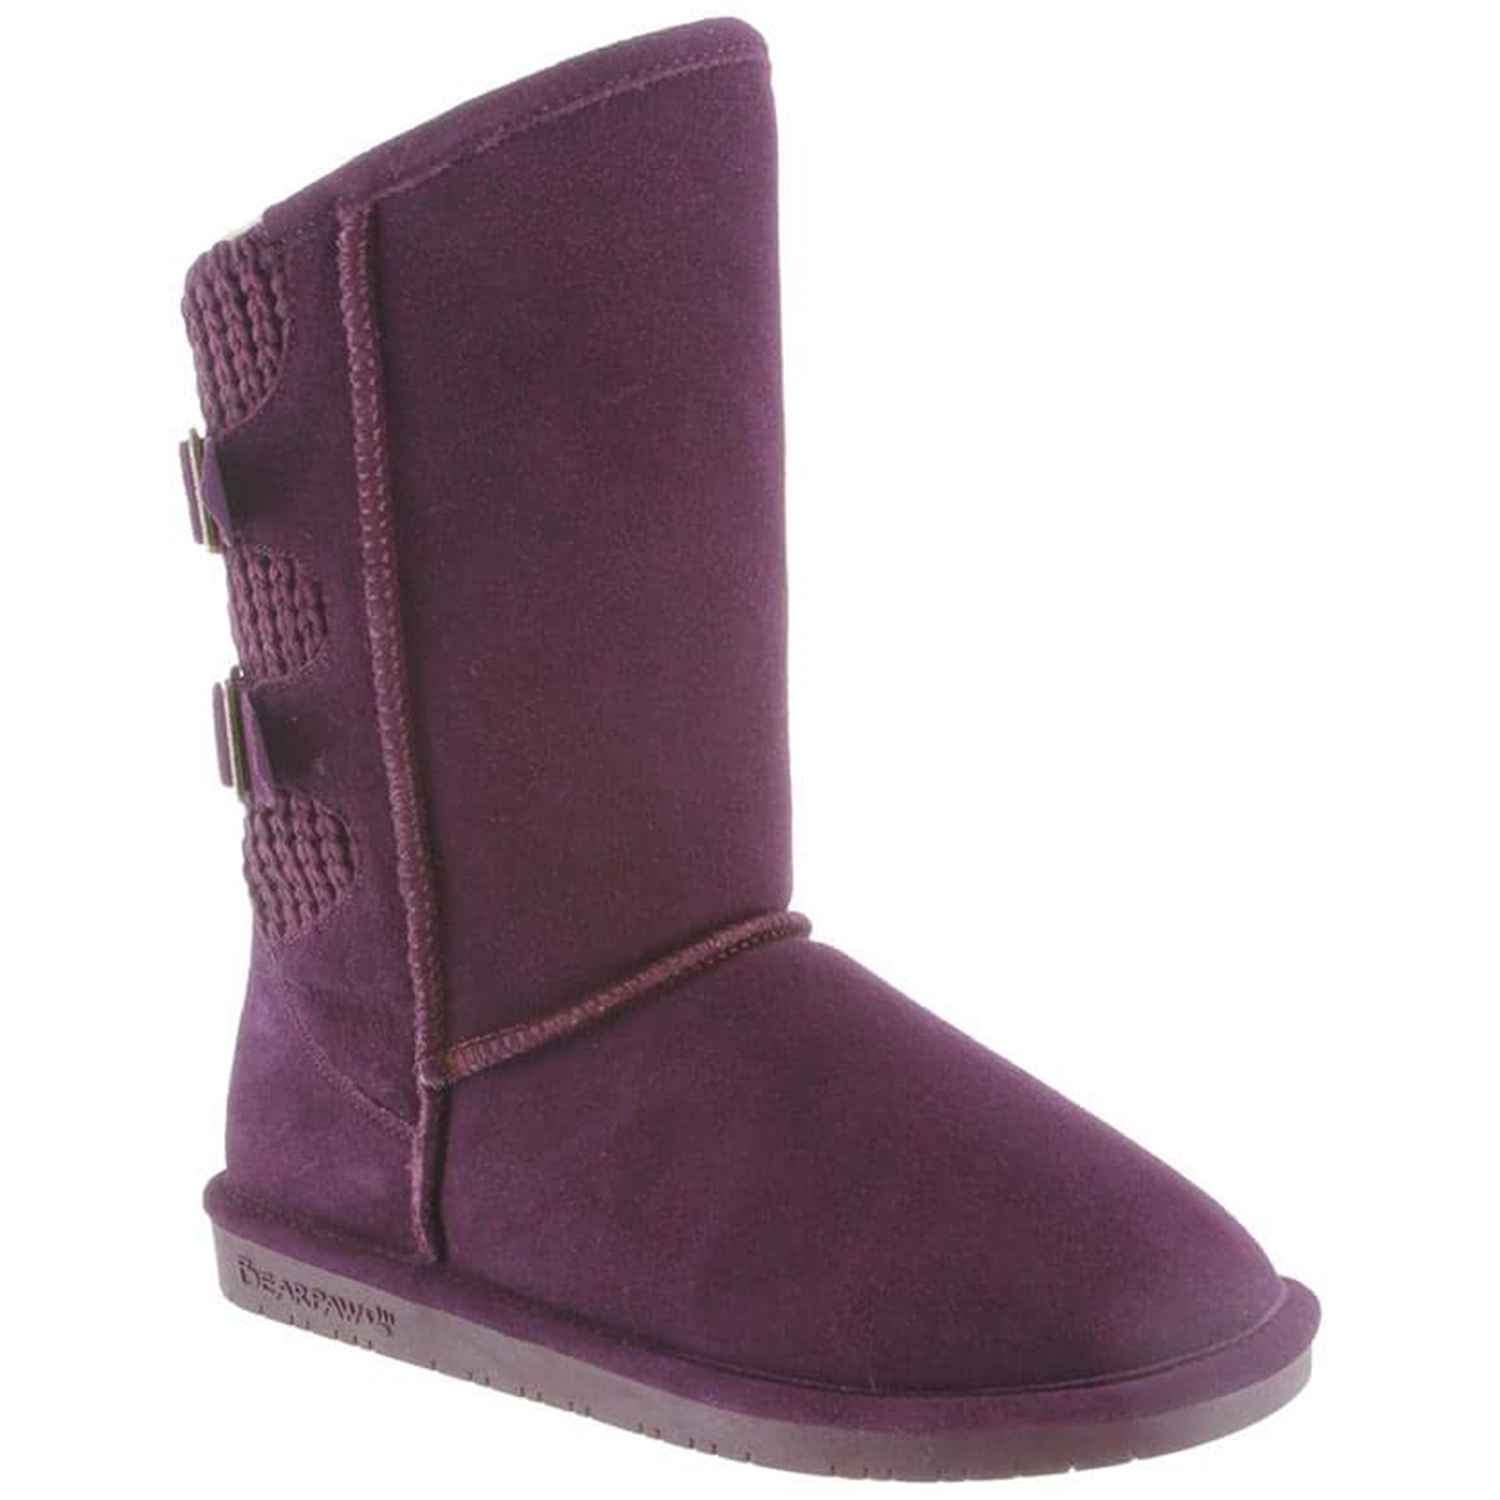 Bearpaw Women's Boshie Deep Purple Ankle-High Suede Boot 9M by Bearpaw